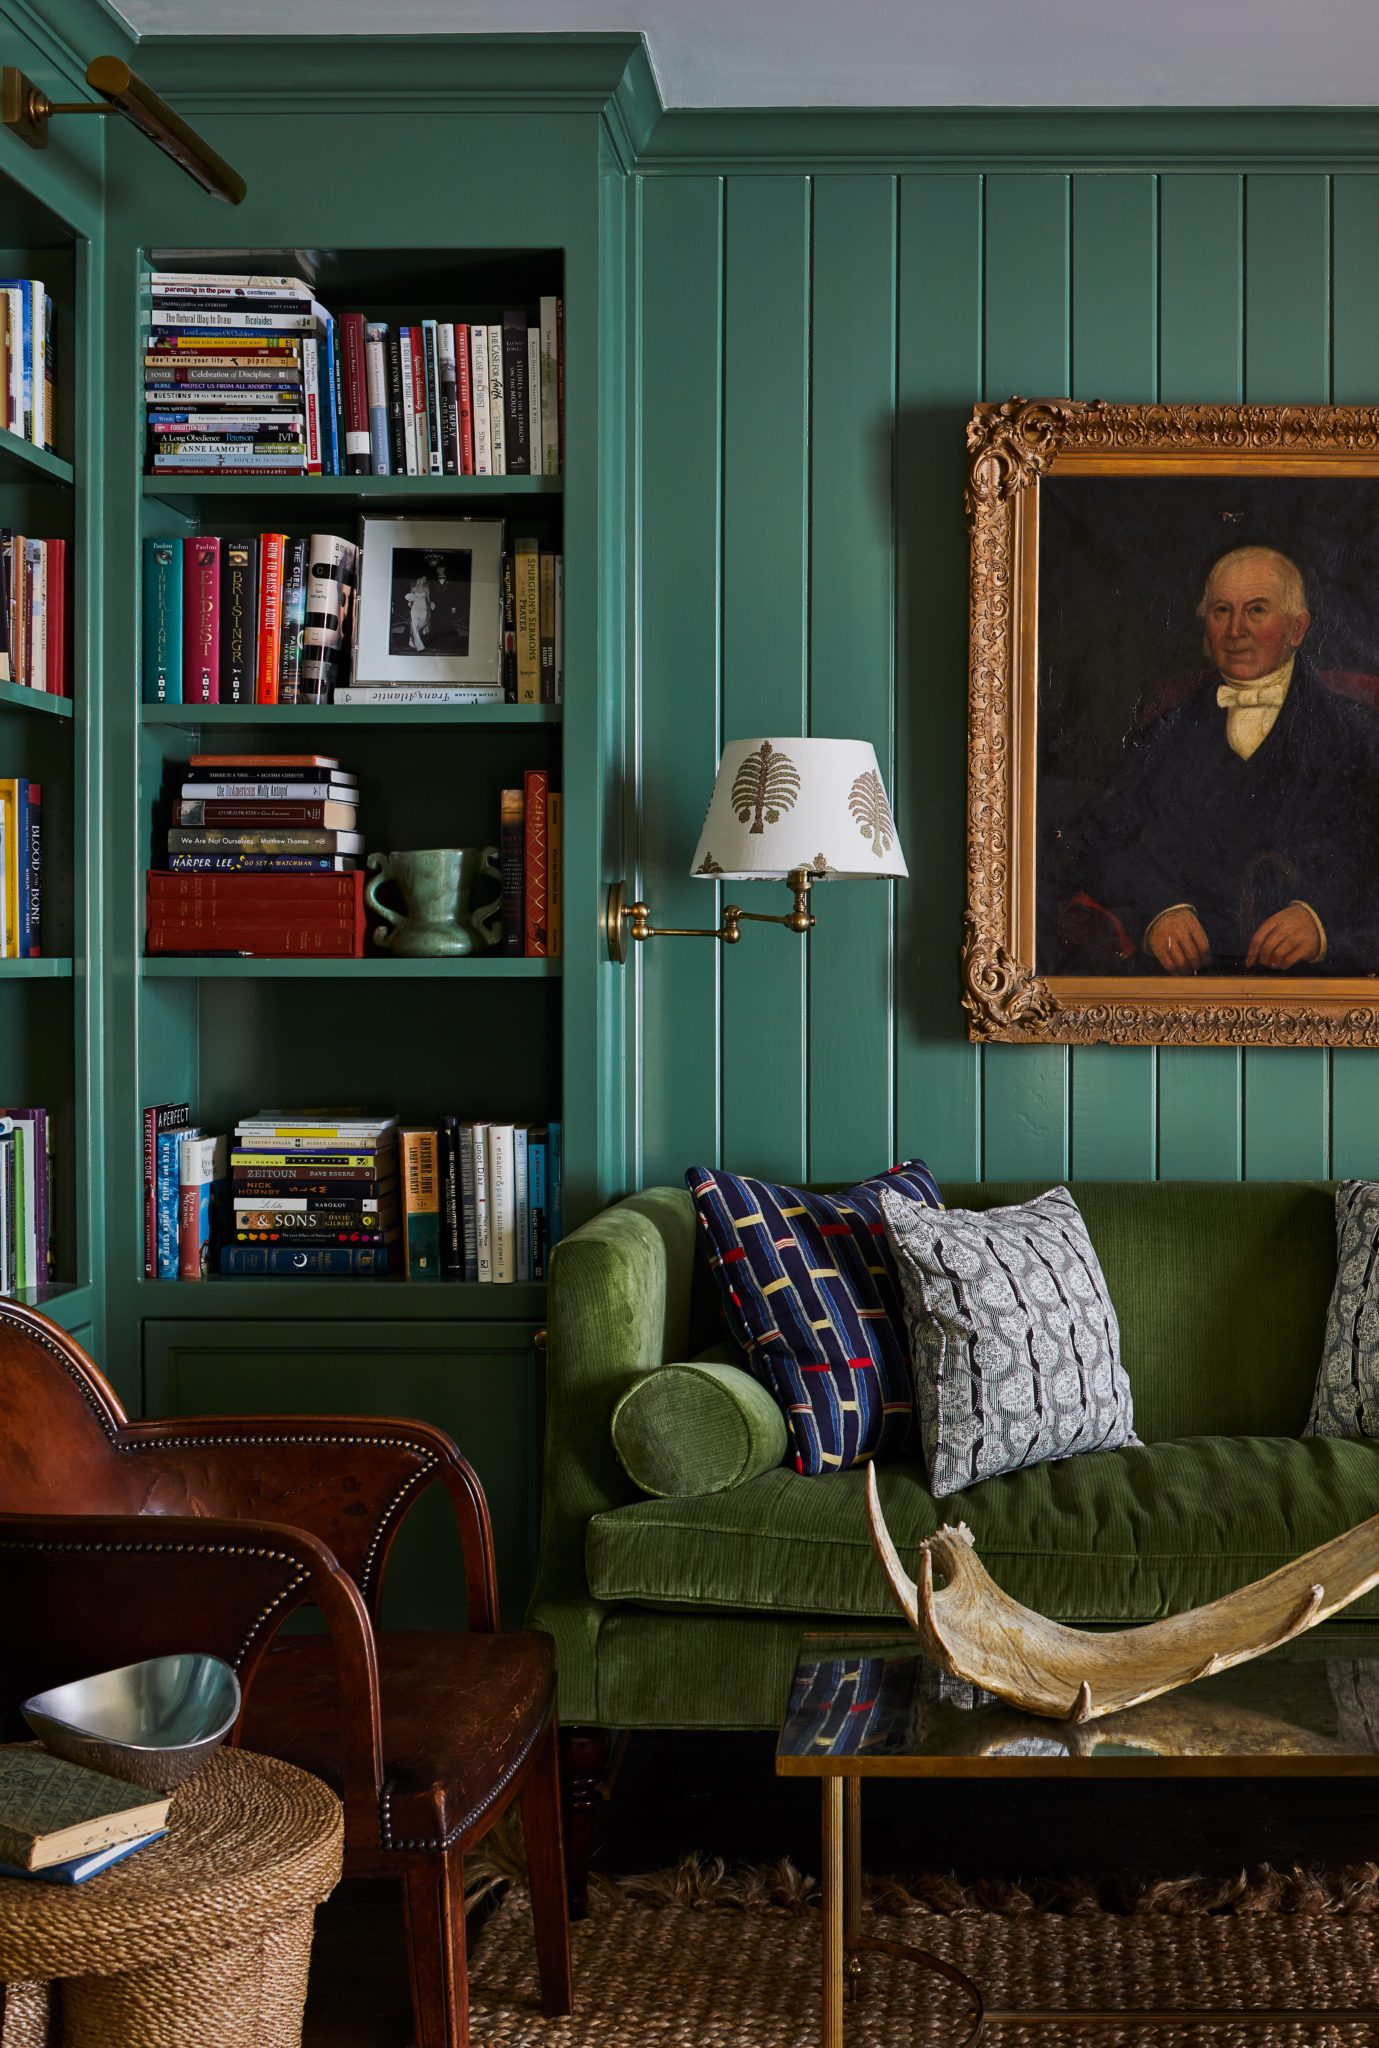 """Green Walls   Green walls communicate sophistication. At Farrow & Ball's first studio, where the famed luxury paint brand invented many of their original colors, the walls were painted a rich, deep green that soaked up sunlight. In other spaces, such as the living room pictured above, green has provided spaces with a grown-up elegance that still feels novel. """"Green is one of those colors that people are most comfortable with because it's so abundant in nature,"""" says designer Meredith Ellis, founder ofMeredith Ellis Designin Dallas, Texas, as well as a direct-to-the-trade brand called James Showroom.""""It can still be a little edgy, dramatic, or bold, depending on what you pair with it,""""she says. """"It's a classic, and one not easily tired of, so people don't fear the commitment or eventual regret of painting an entire room green."""""""